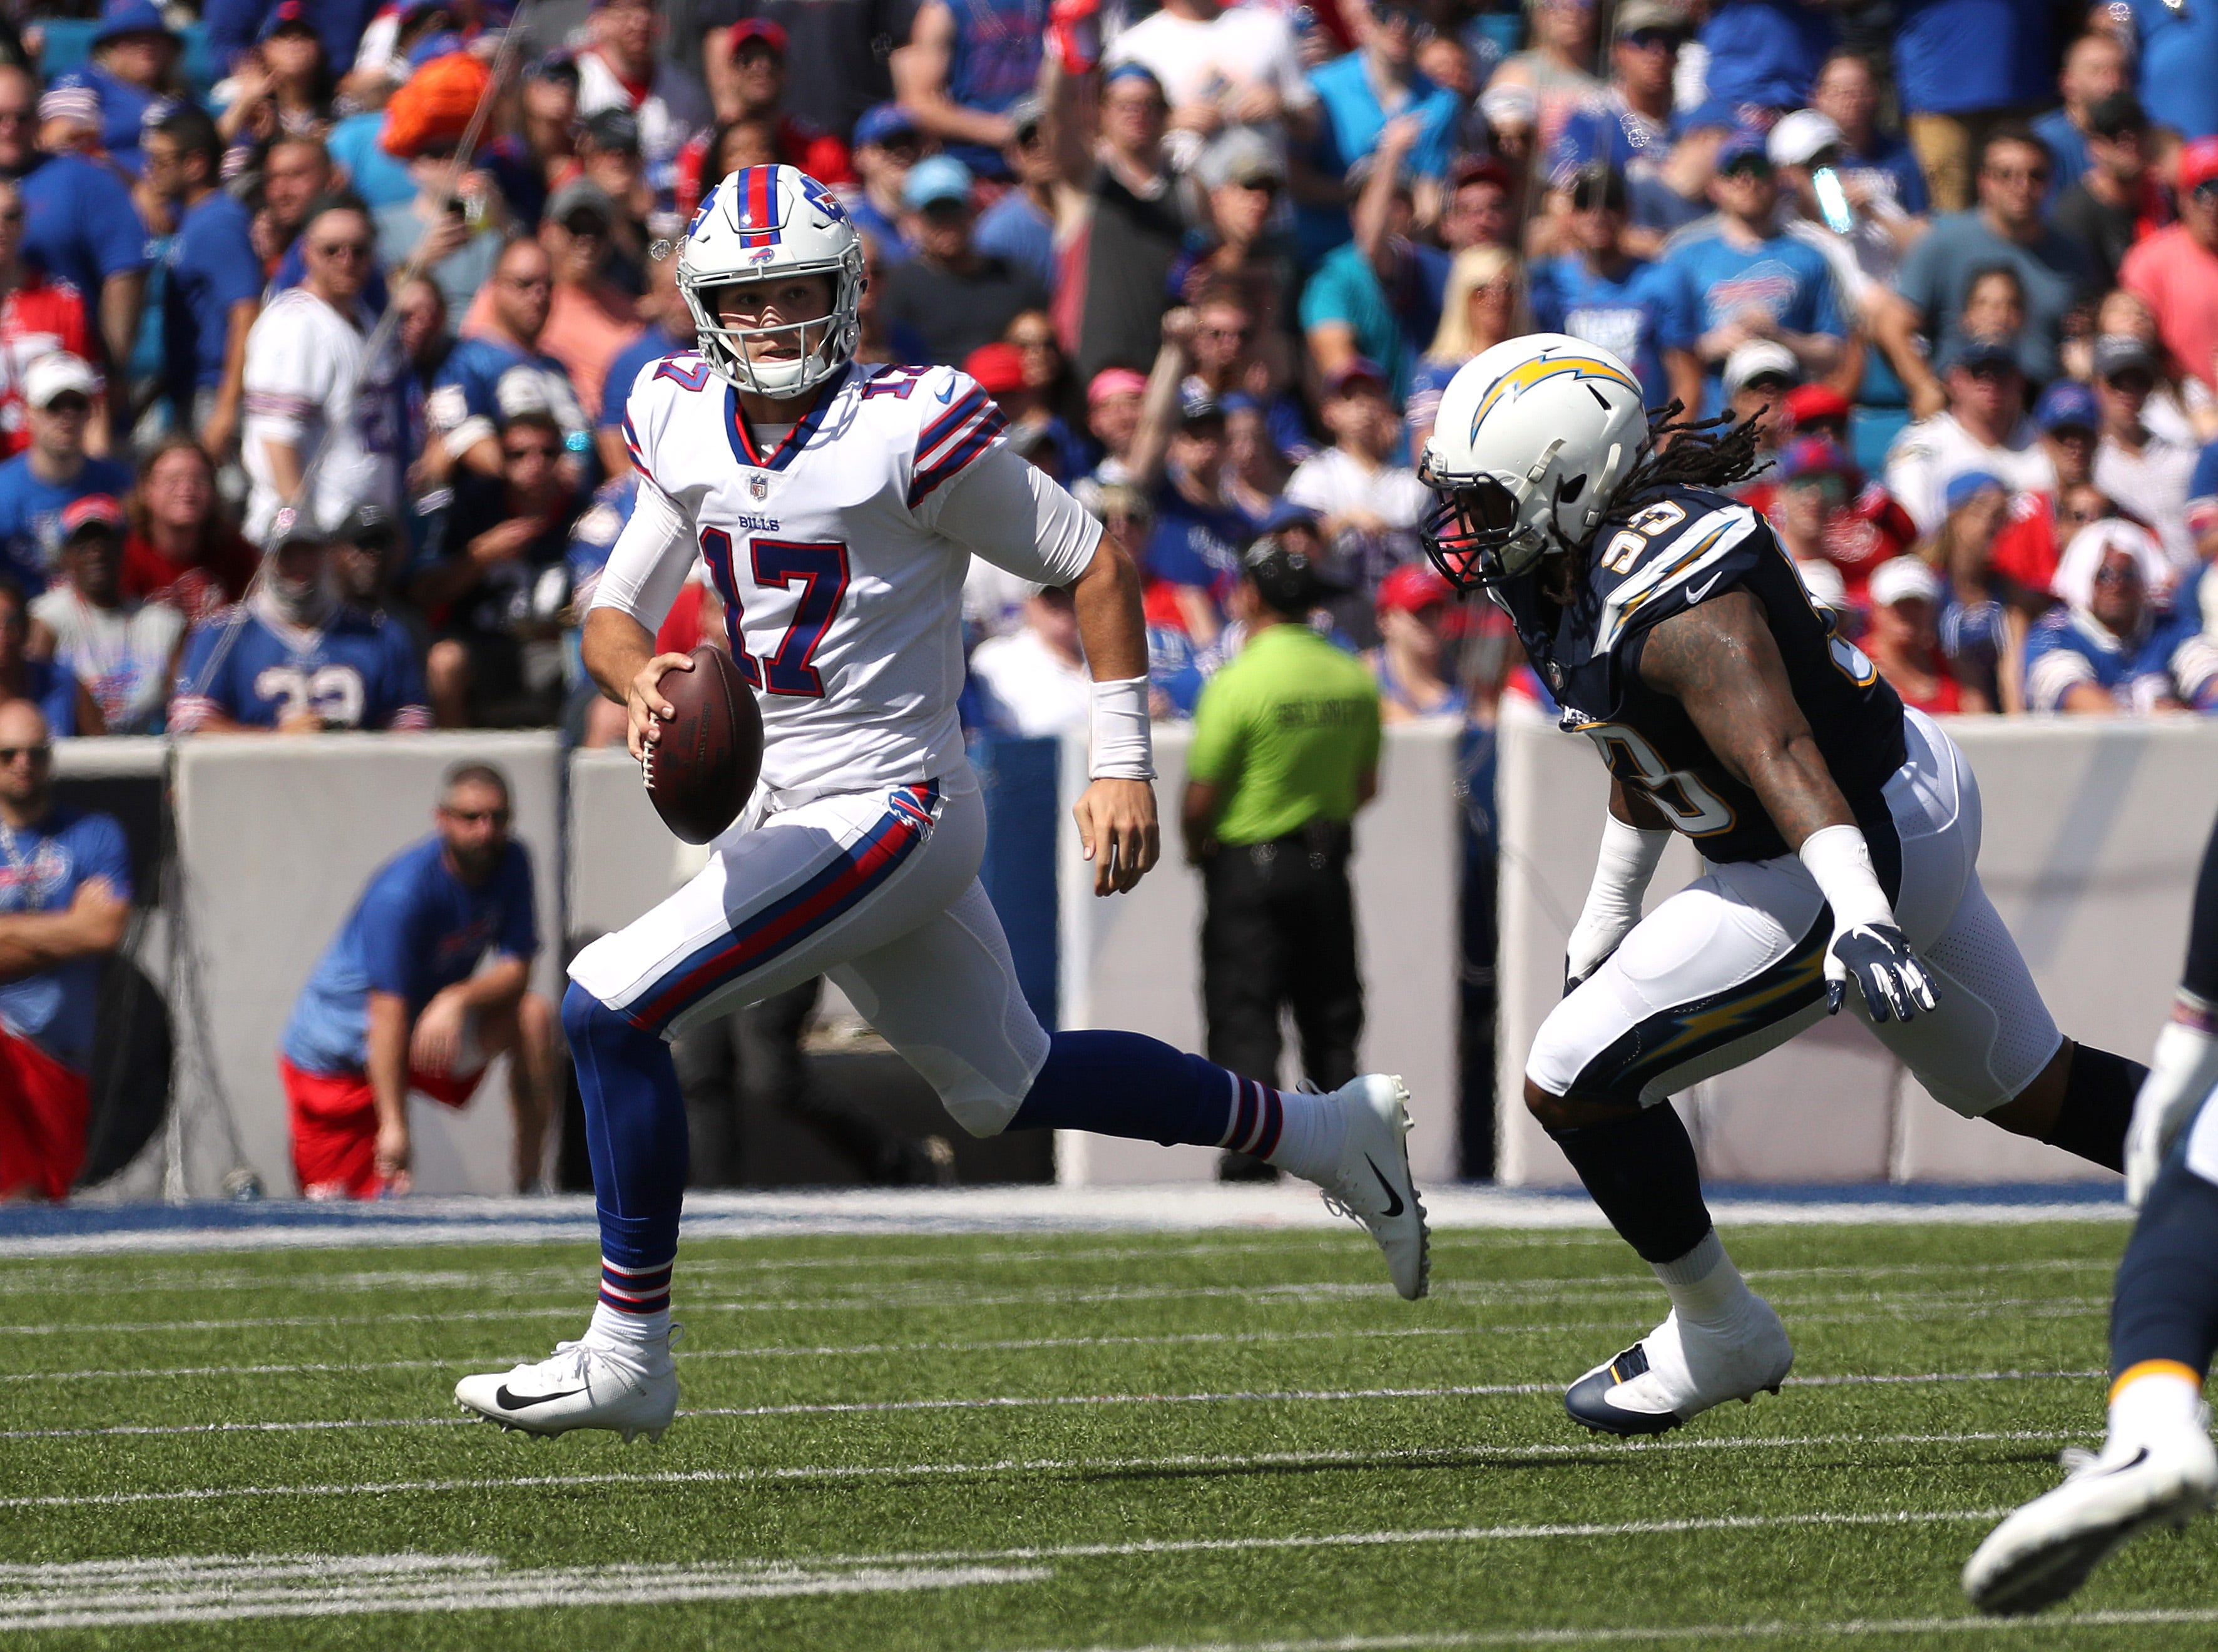 Bills quarterback Josh Allen is chased out of the pocket by Chargers Darius Philon.